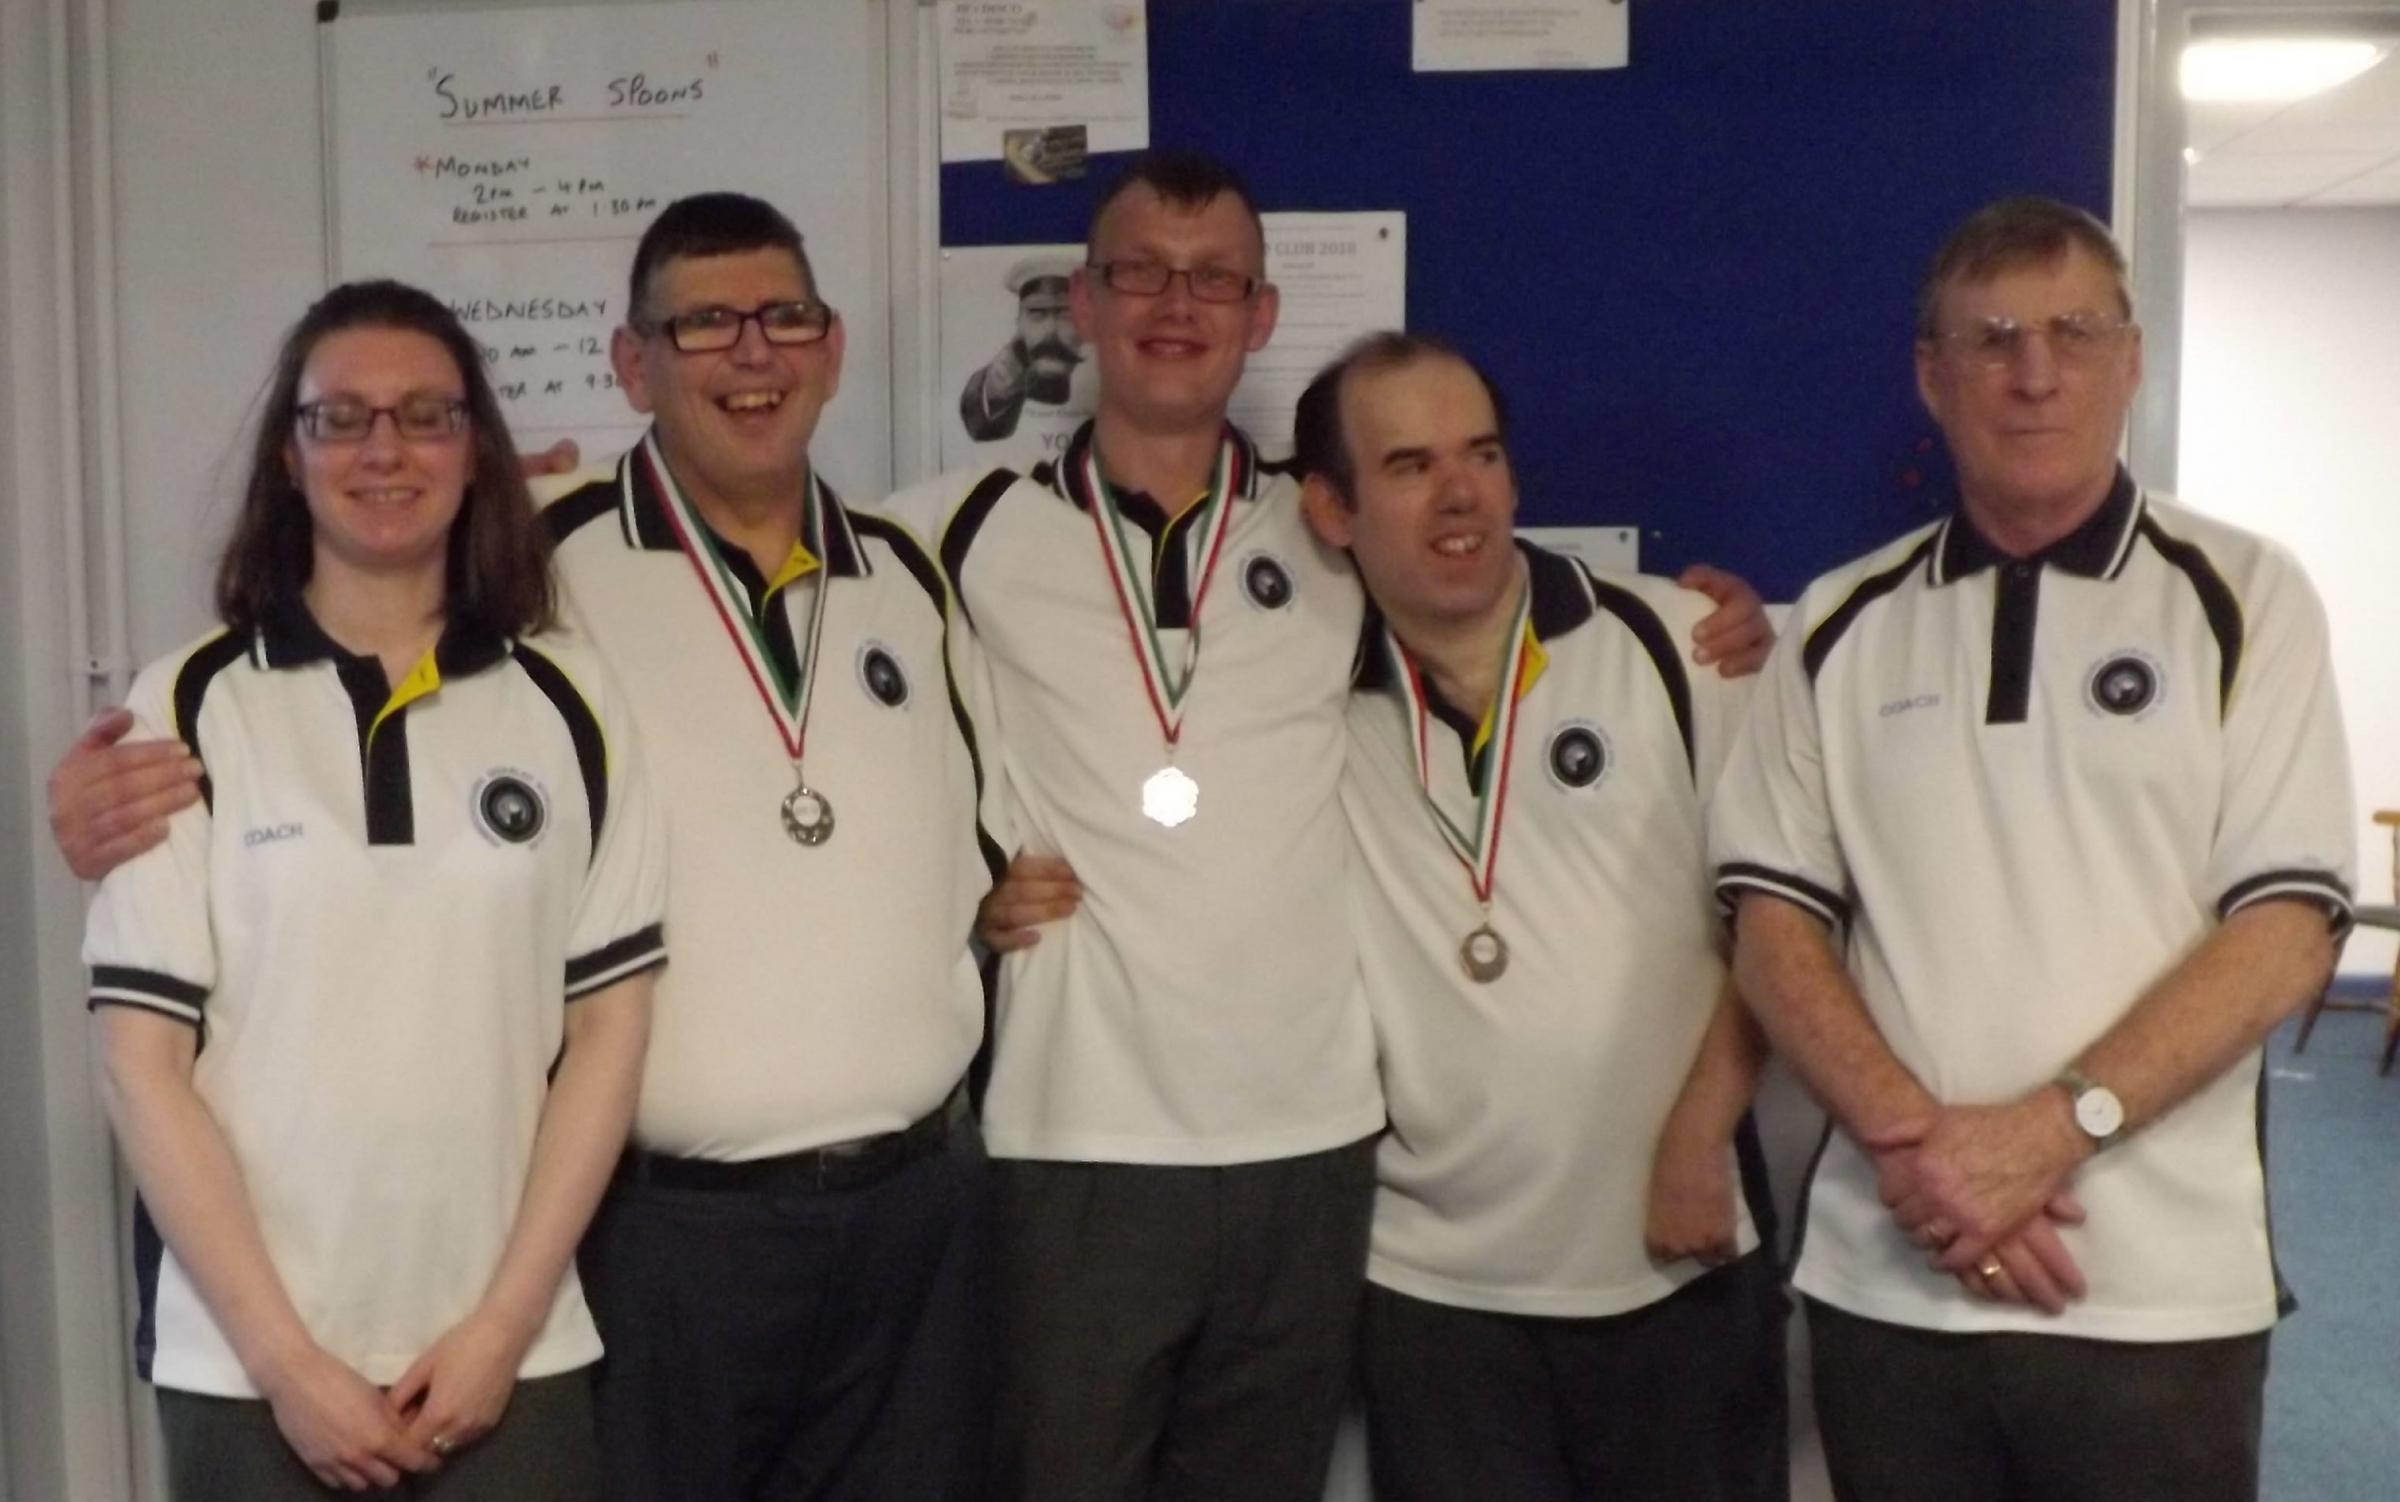 Pictured, from left: Maddie (coach) Simon Eaton (sil-ver), James Tyler (bronze), Lee Bower (bronze), and Steve (coach).